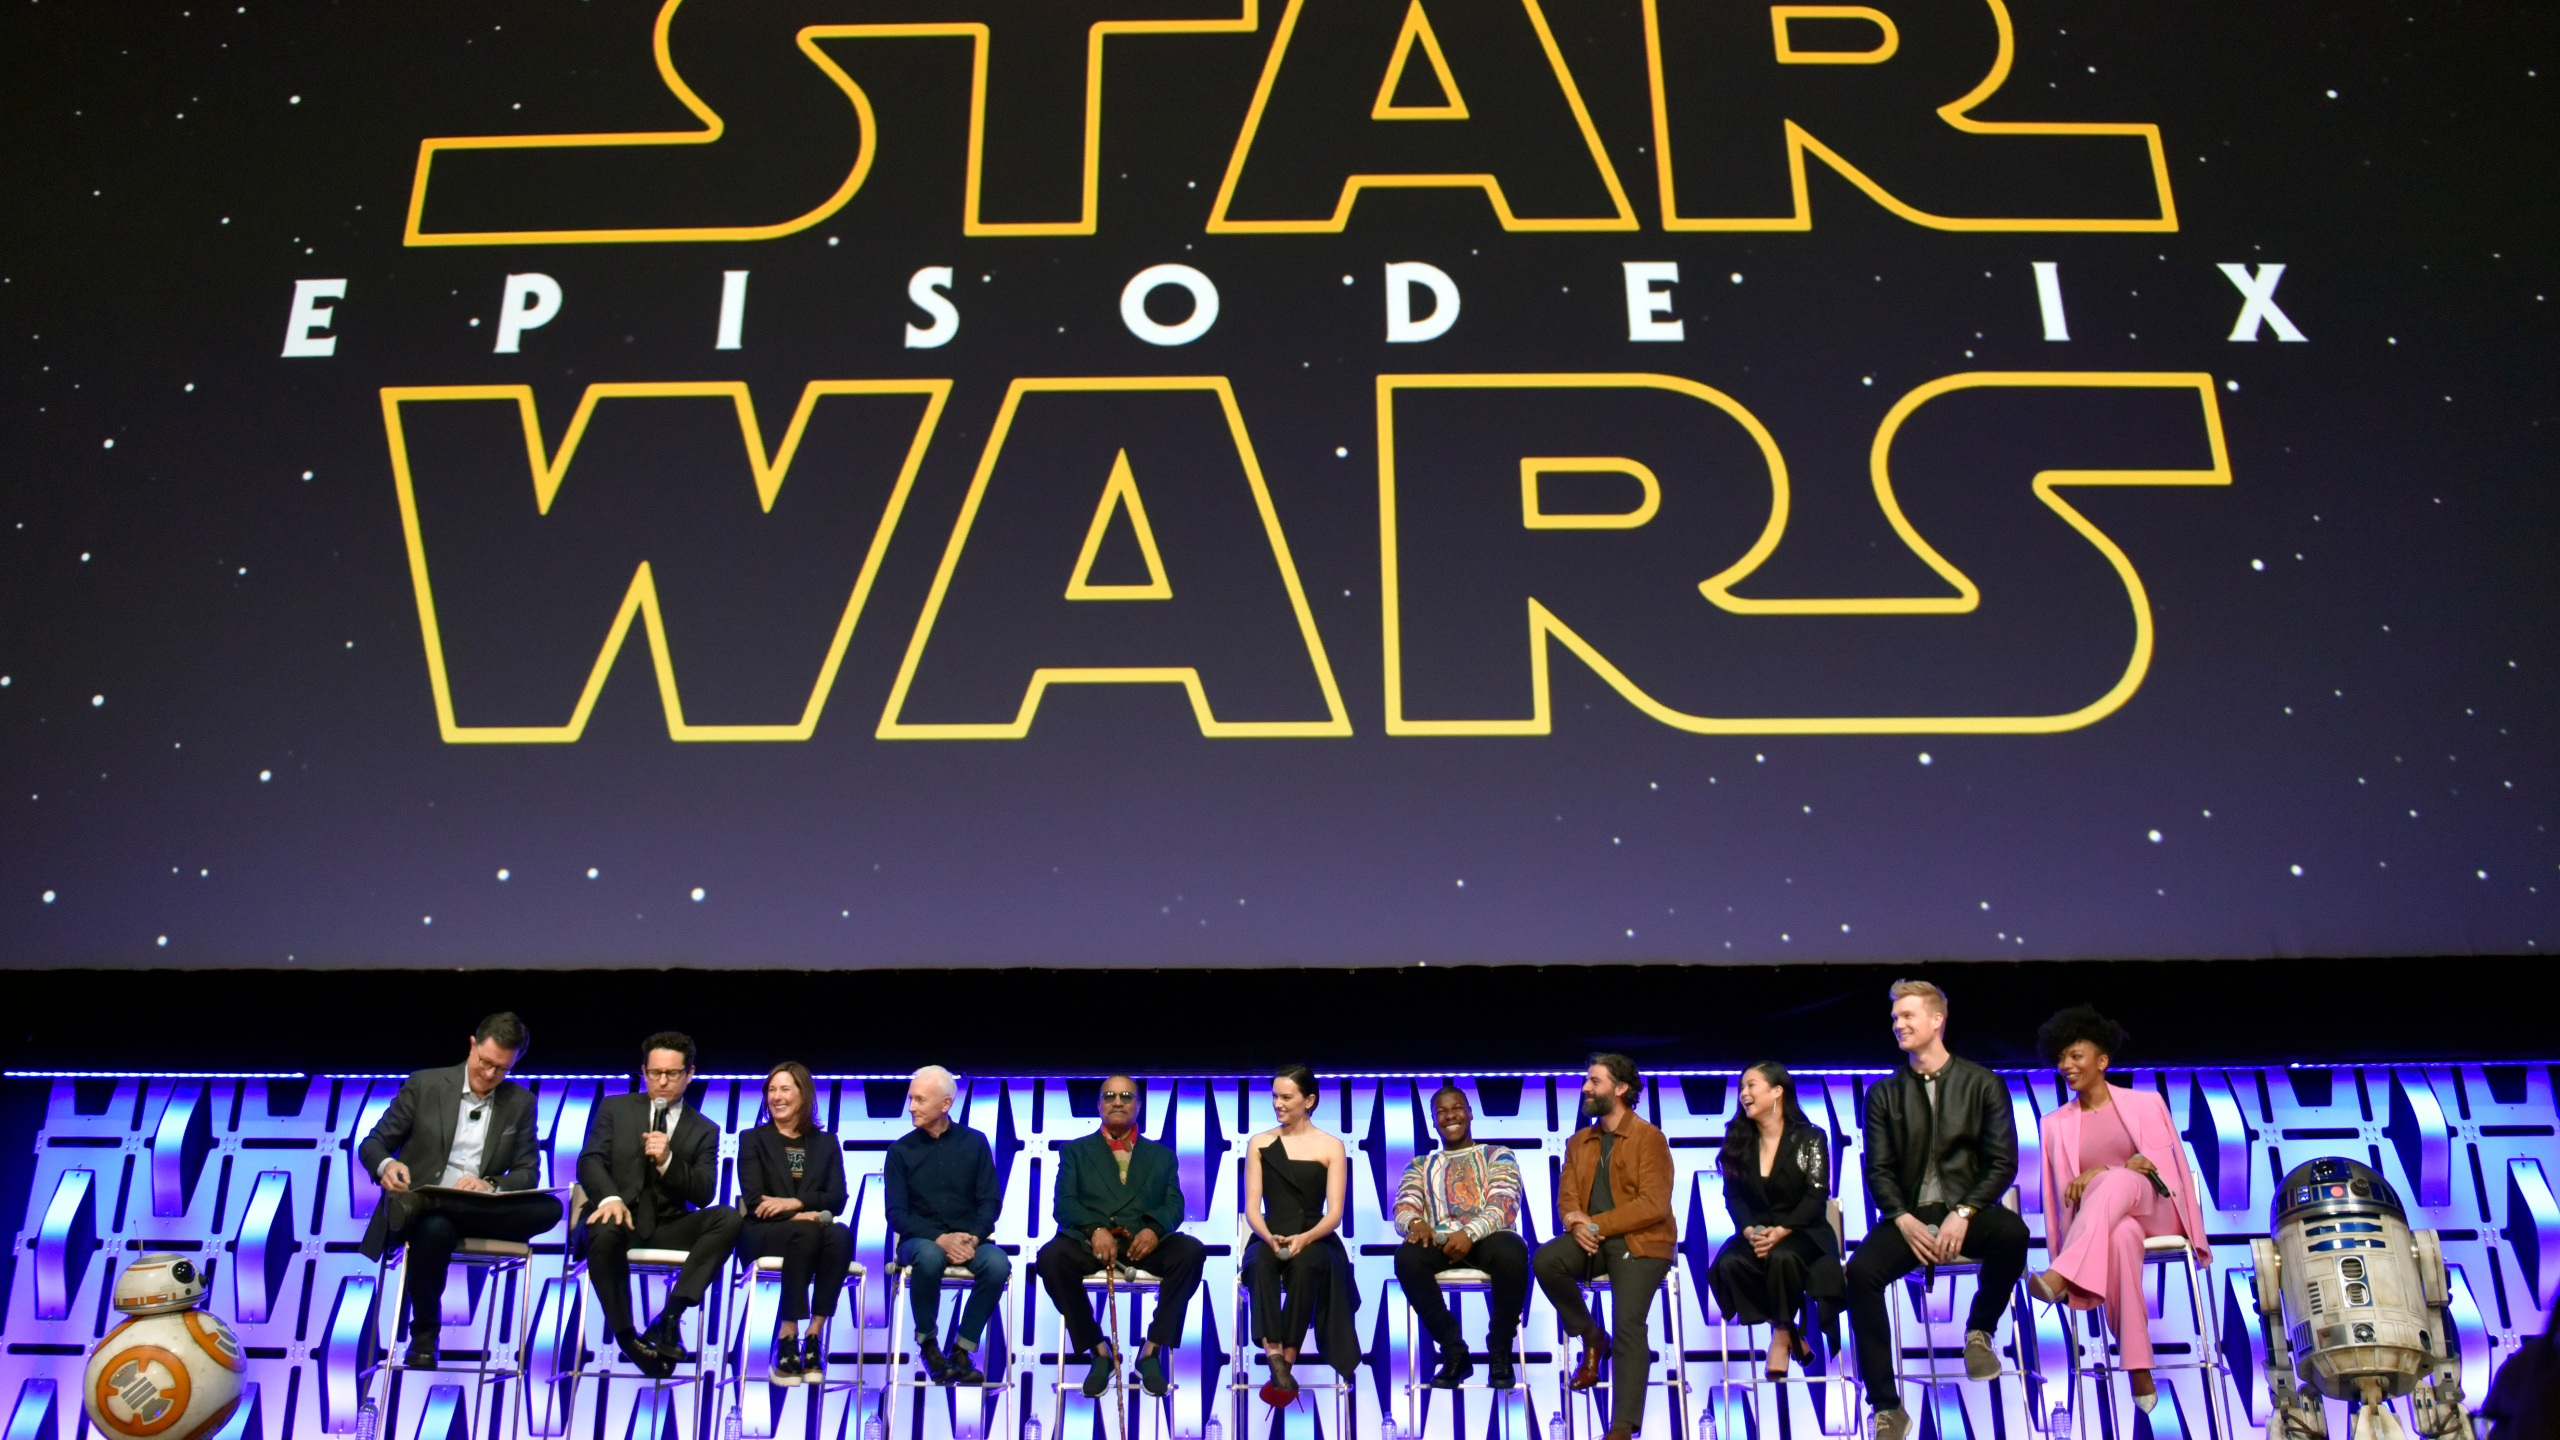 Stephen Colbert, J.J. Abrams, Kathleen Kennedy, Anthony Daniels, Billy Dee Williams, Daisy Ridley, John Boyega, Oscar Isaac, Kelly Marie Tran, Joonas Suotamo, Naomi Ackie